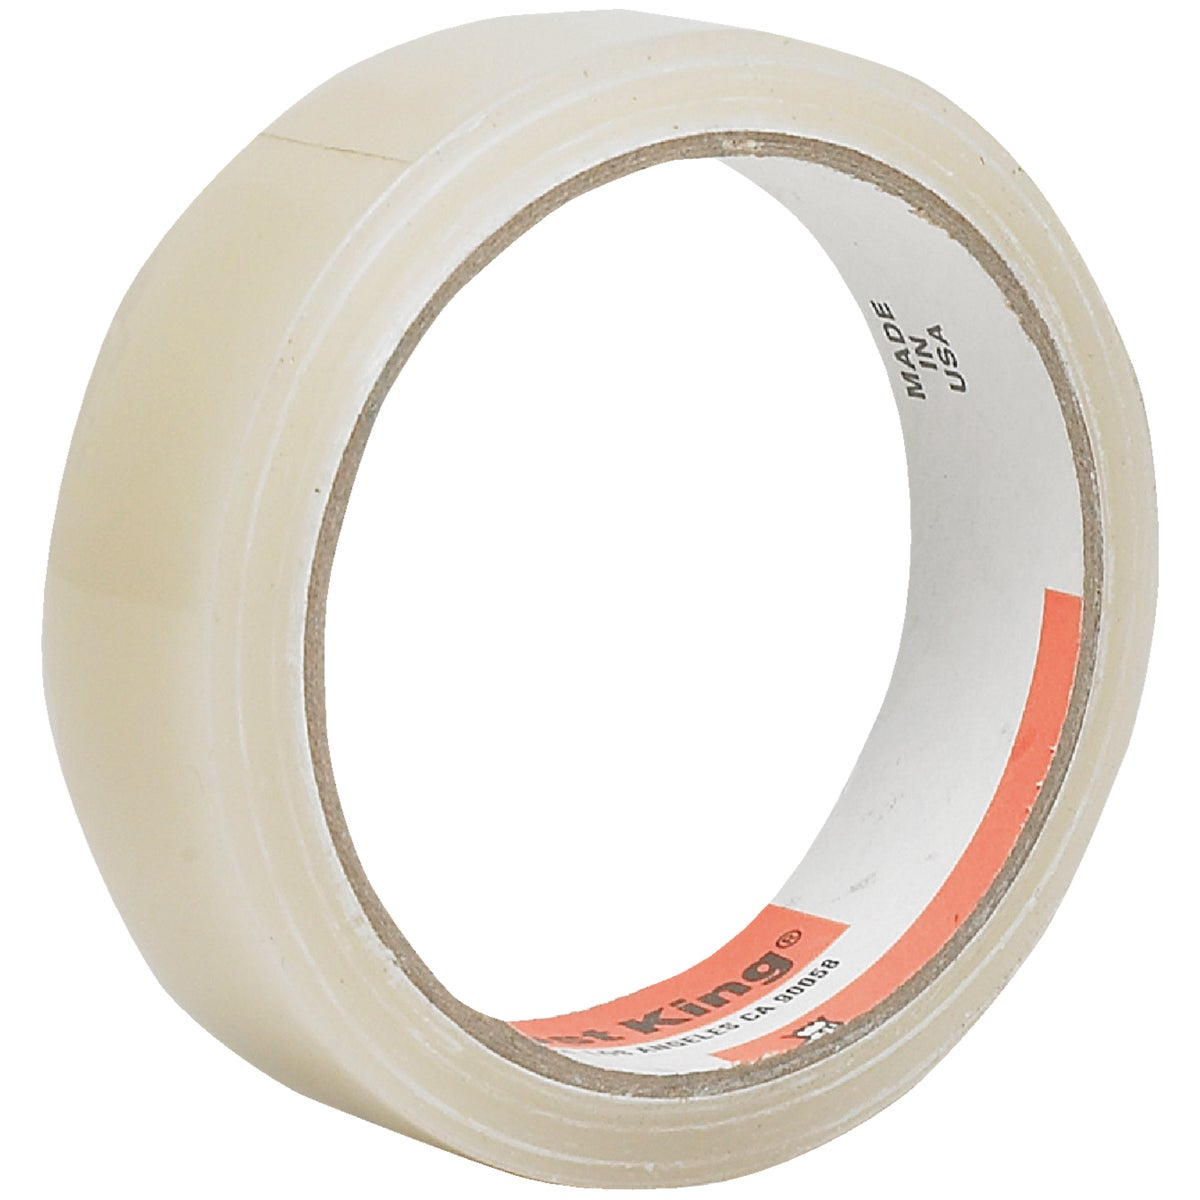 "1""X45' WEATHERSEAL TAPE - T92HDI by Thermwell Prods Co"